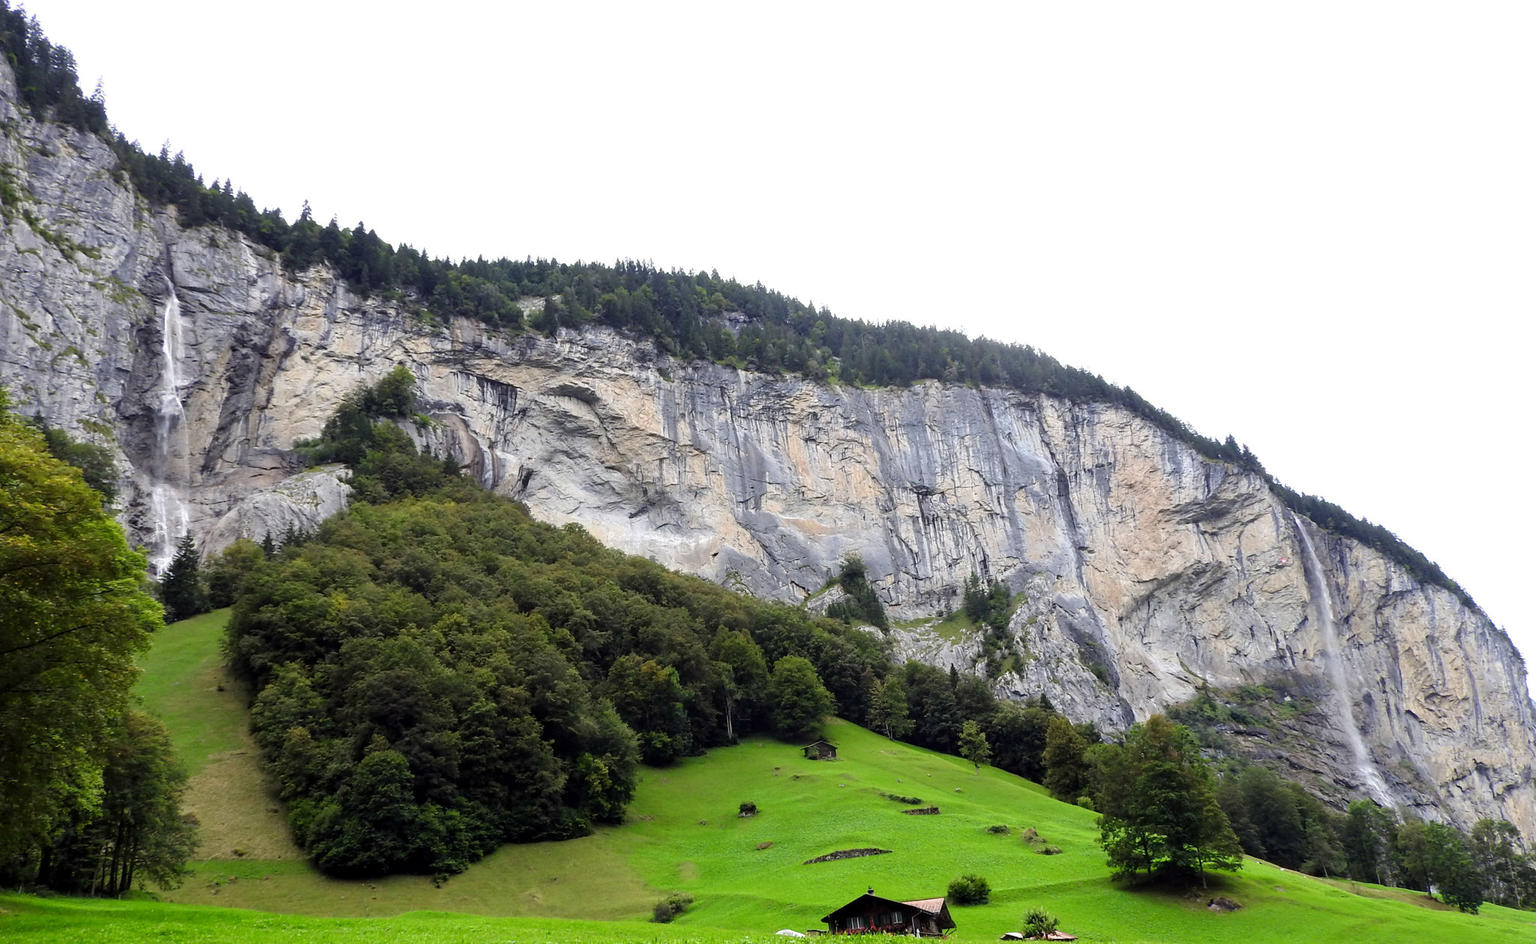 MAIS FOTOS, 6-Hour Guided e-bike tour to Lauterbrunnen 72 Waterfalls Valley and Swiss Picnic